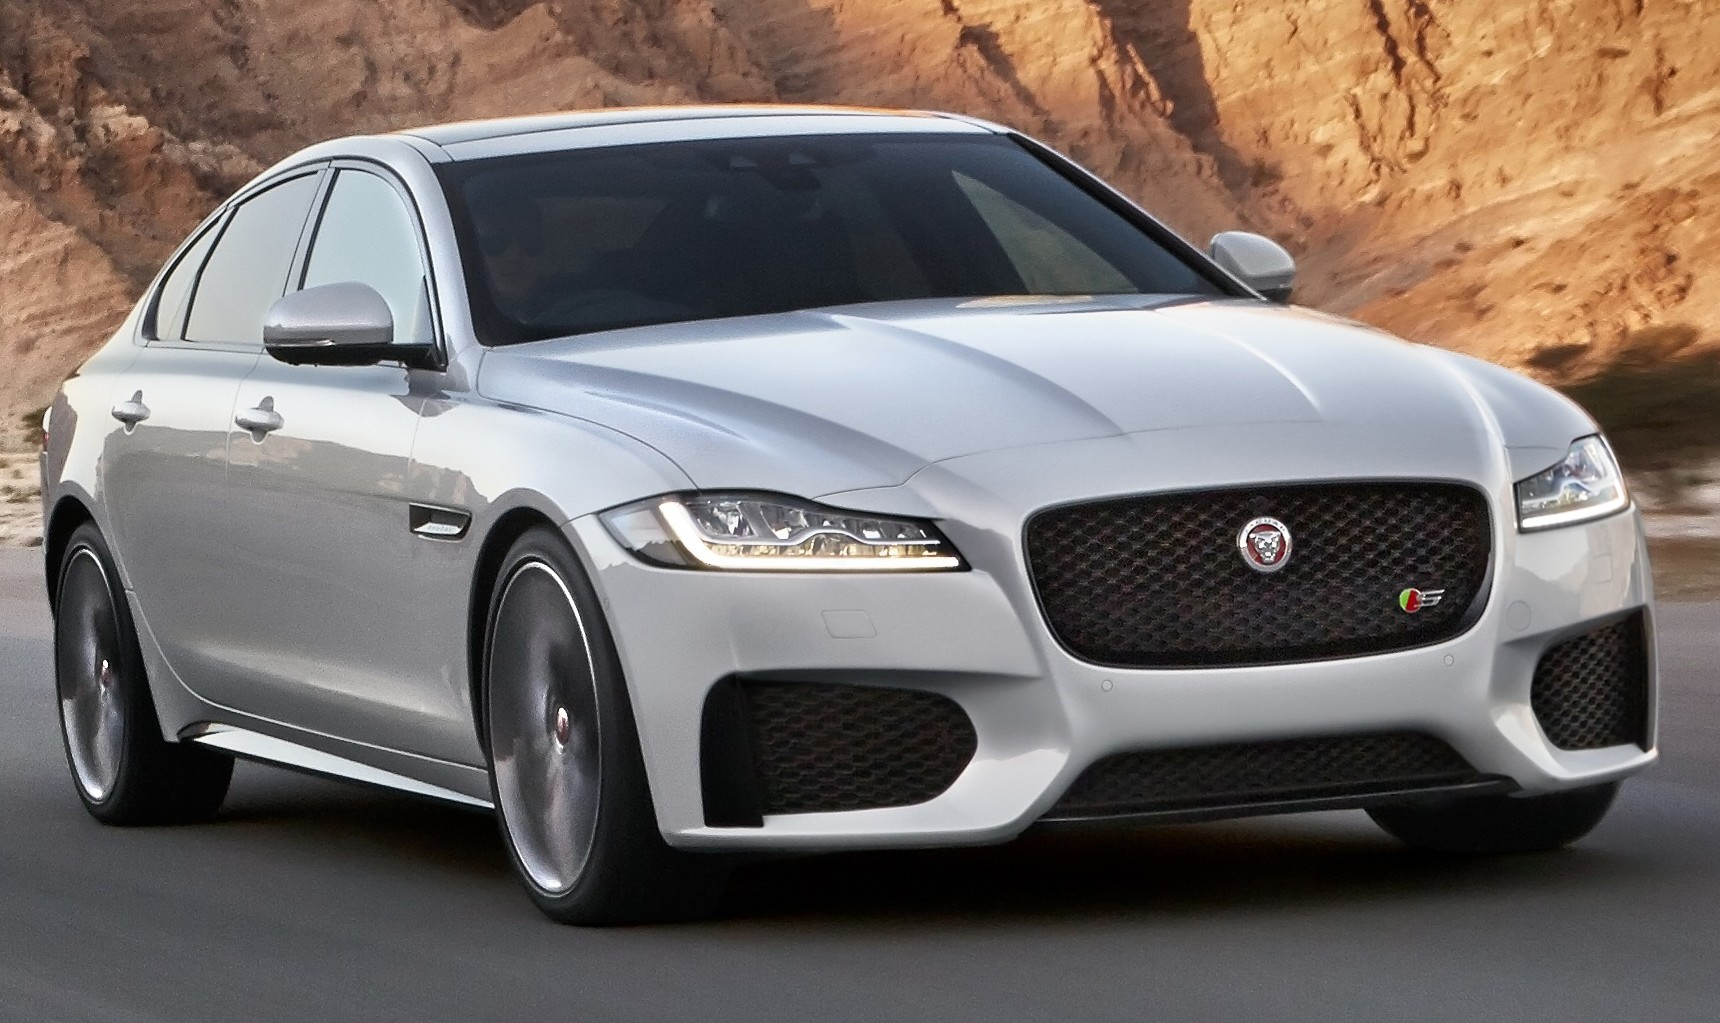 New Jaguar XF to launch next, F-Pace SUV set for 2017